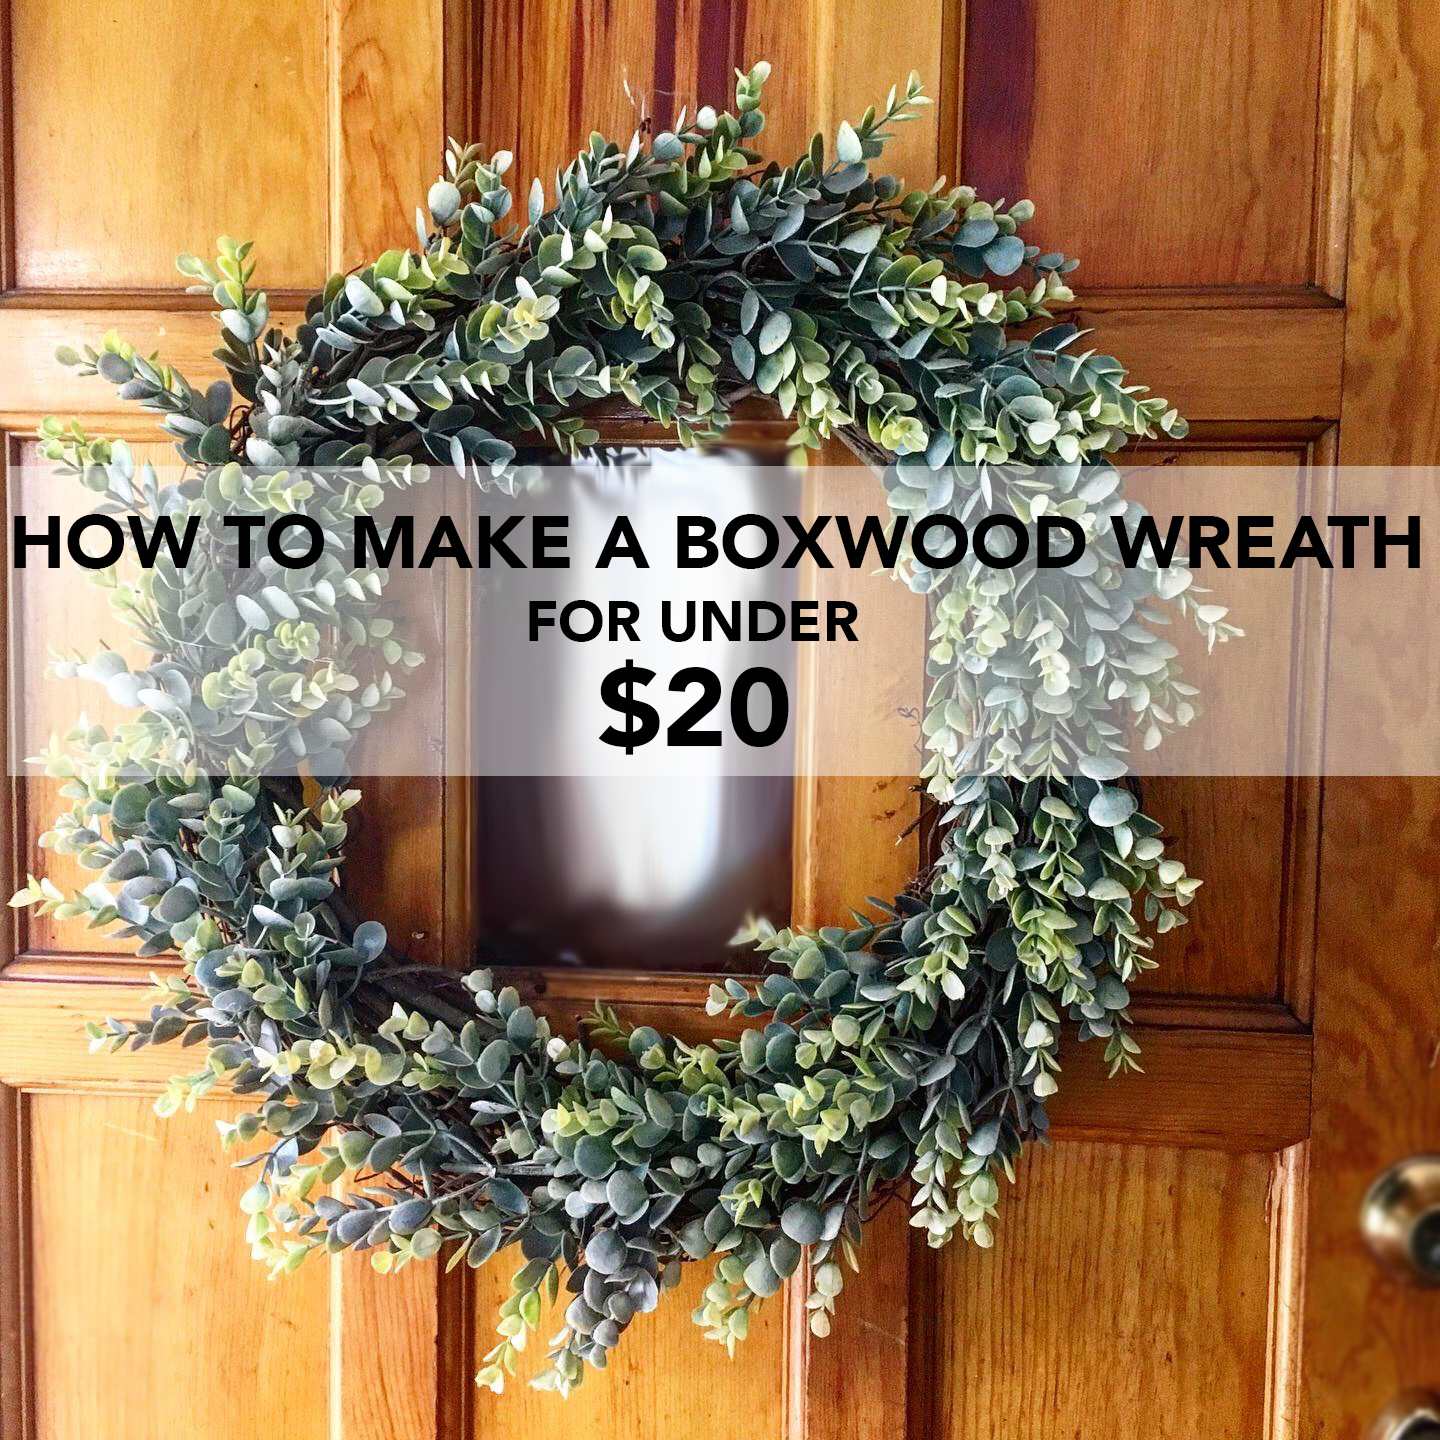 Here is our complete tutorial for How to make a Boxwood wreath for under $20.